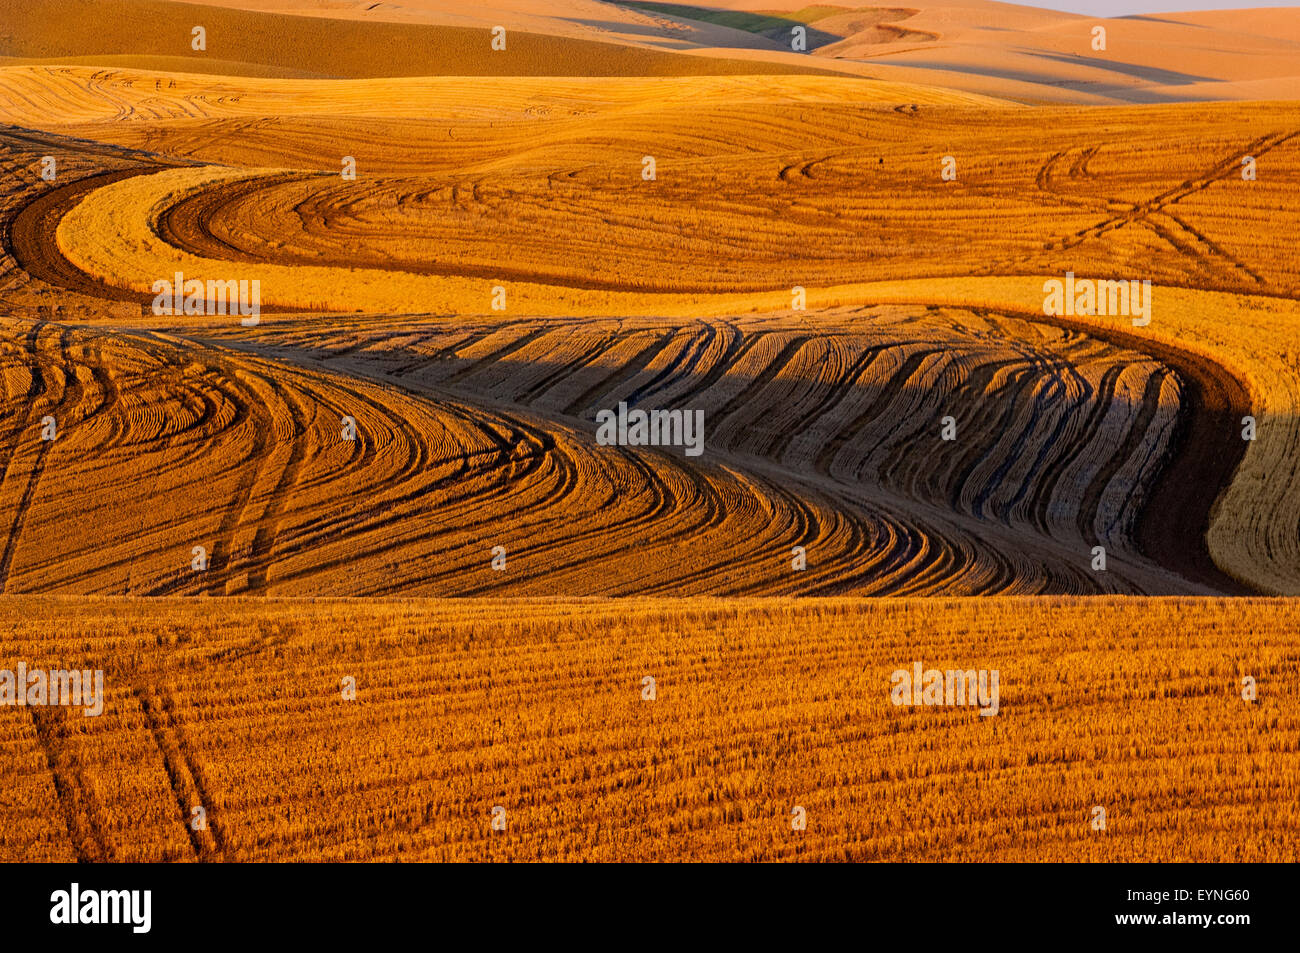 Field of stubble from harvested grain in the hills of the Palouse regiion of Washington Stock Photo